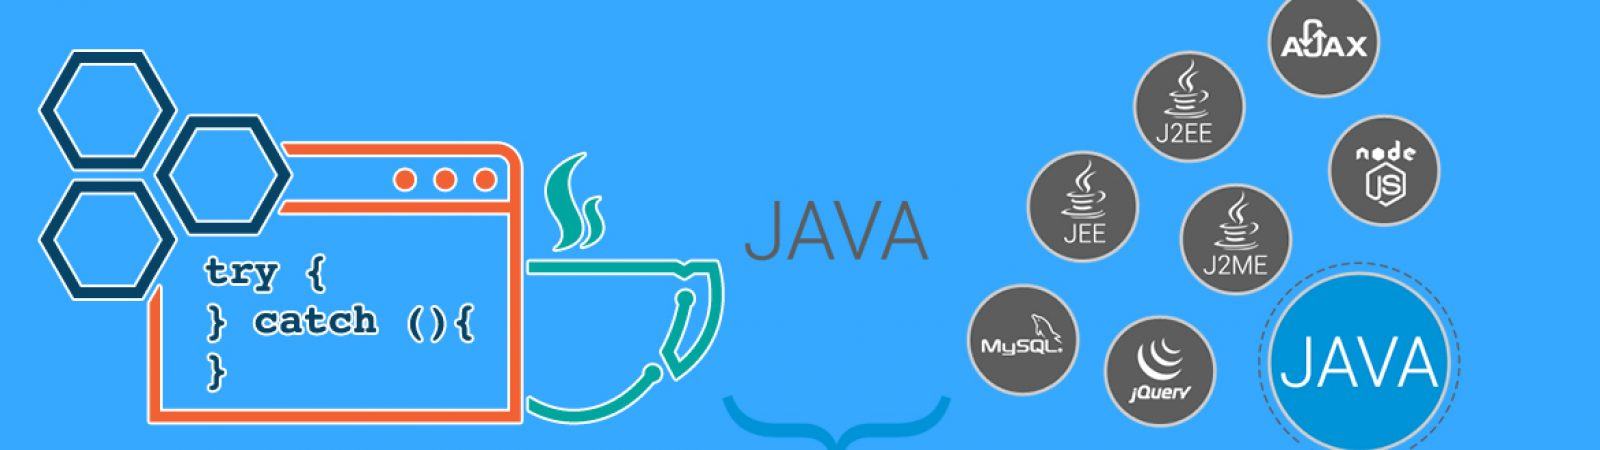 JAVA-AND-J2EE-1